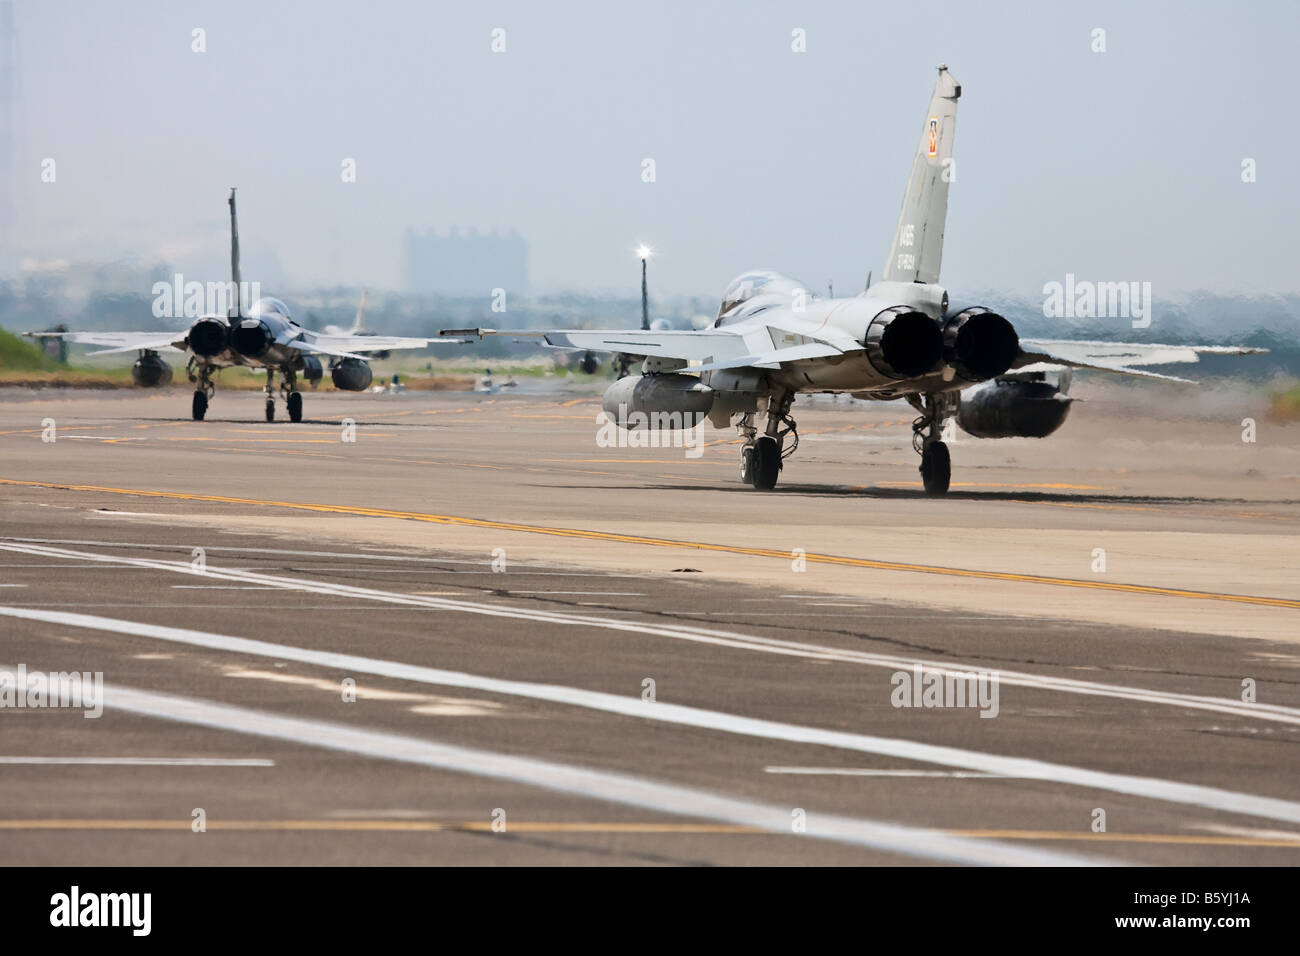 Jet Fighters Taxiing - Stock Image